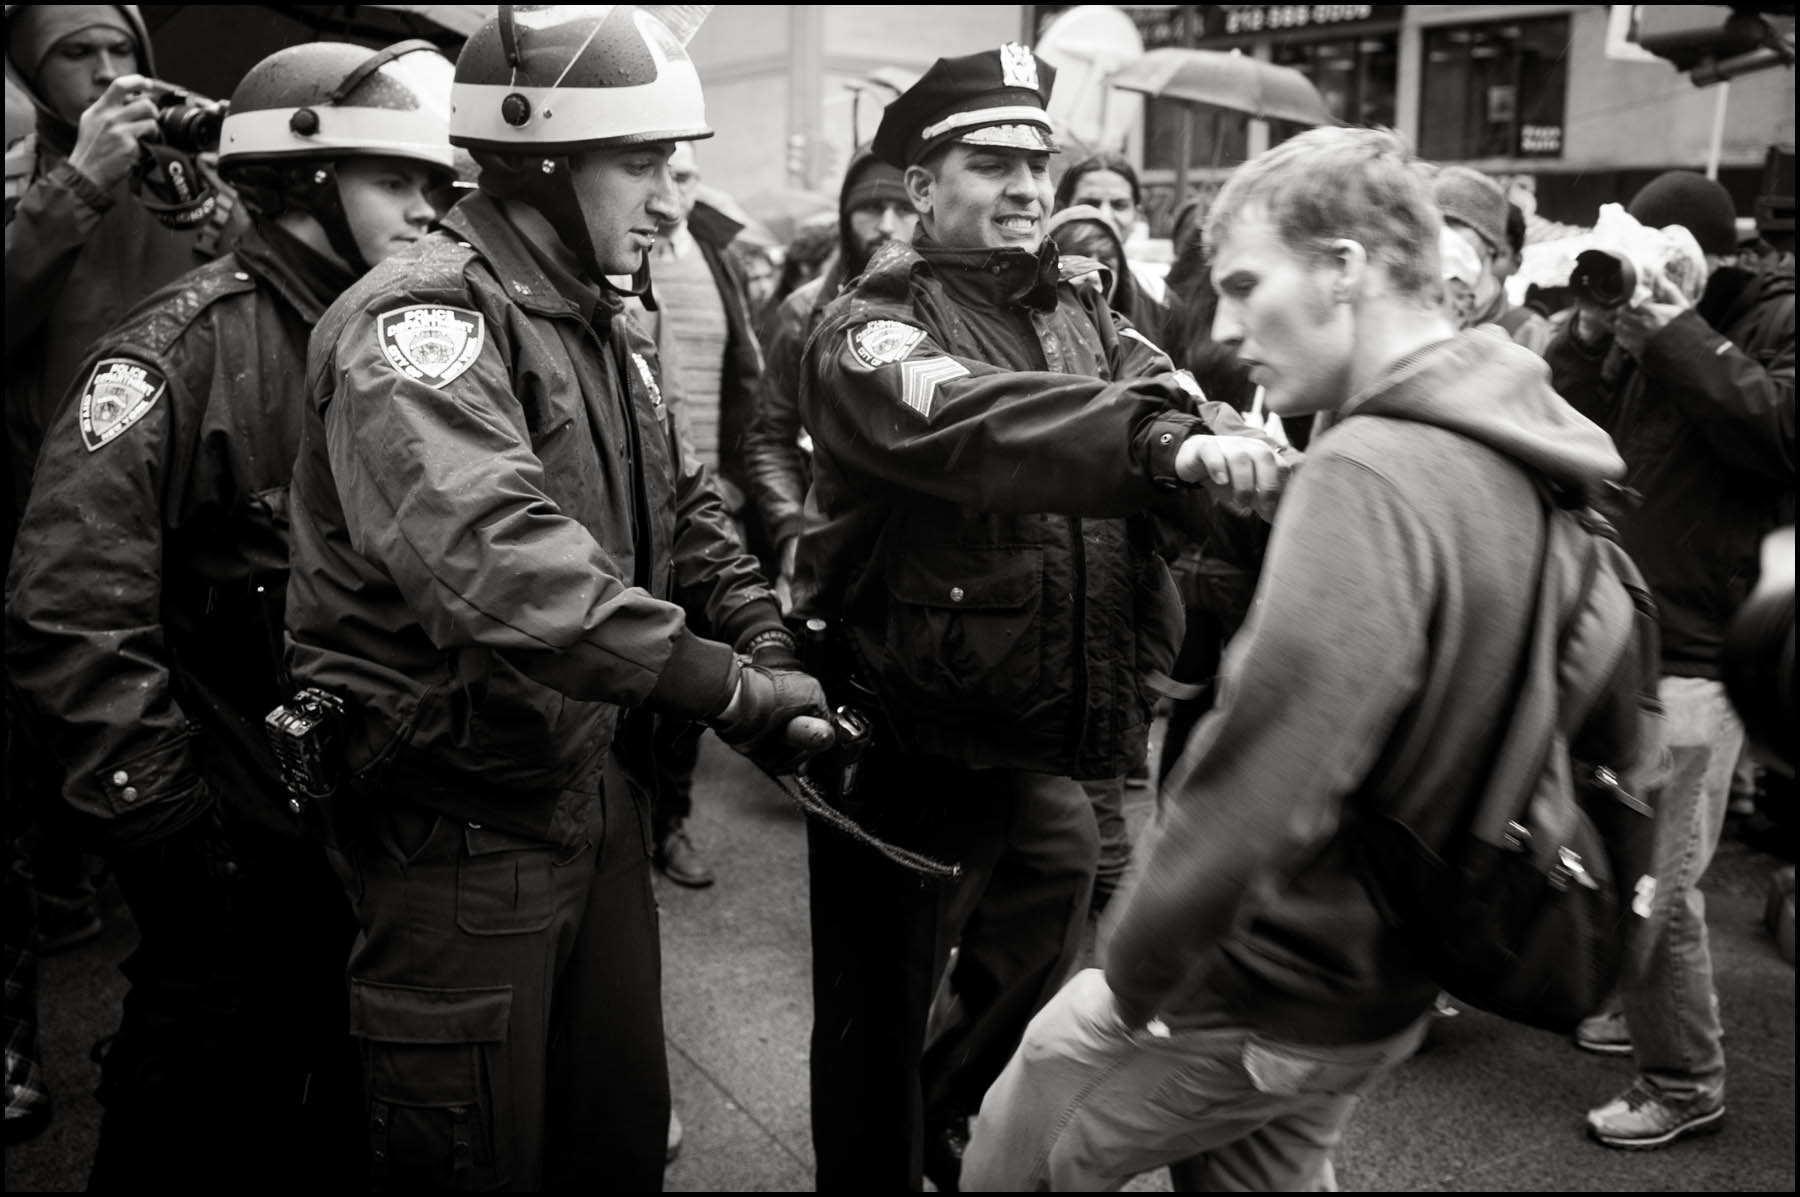 A police officer shoves a protester for not backing up quick enough Thursday in Zuccotti Park.